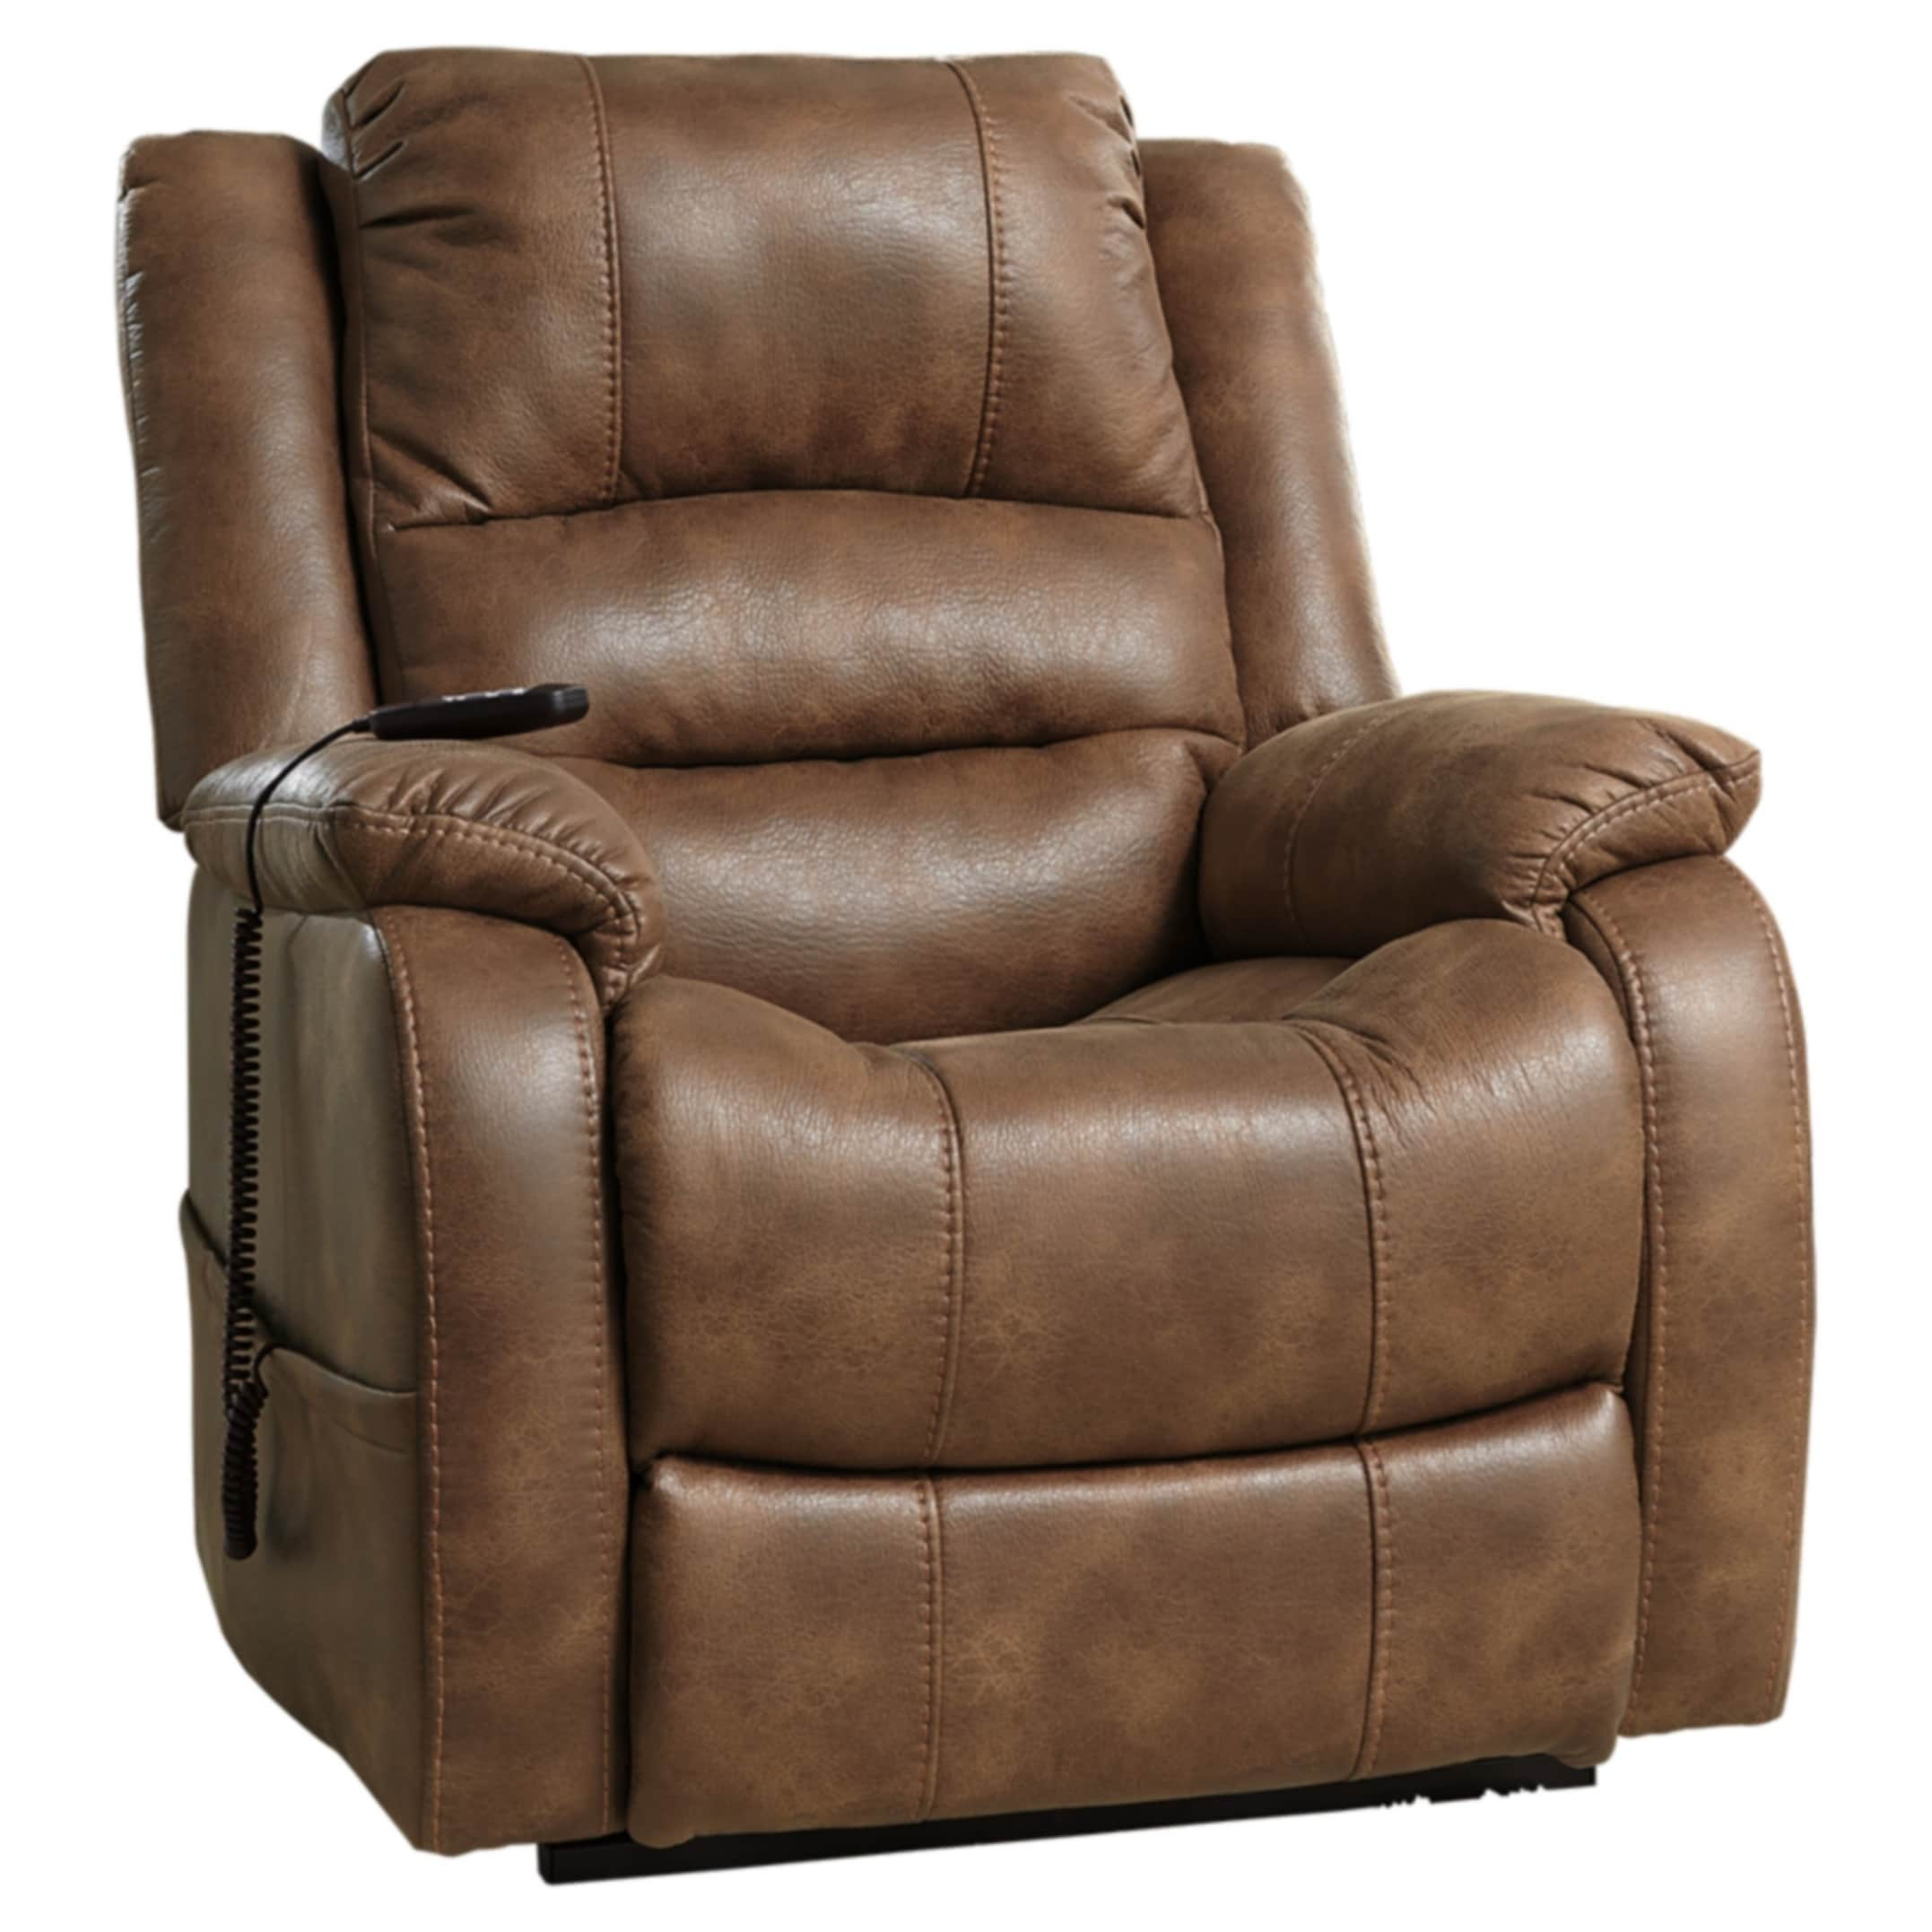 Signature-Design-by-Ashley-Yandel-Brown-Power-Lift-Recliner-Brown-Standard